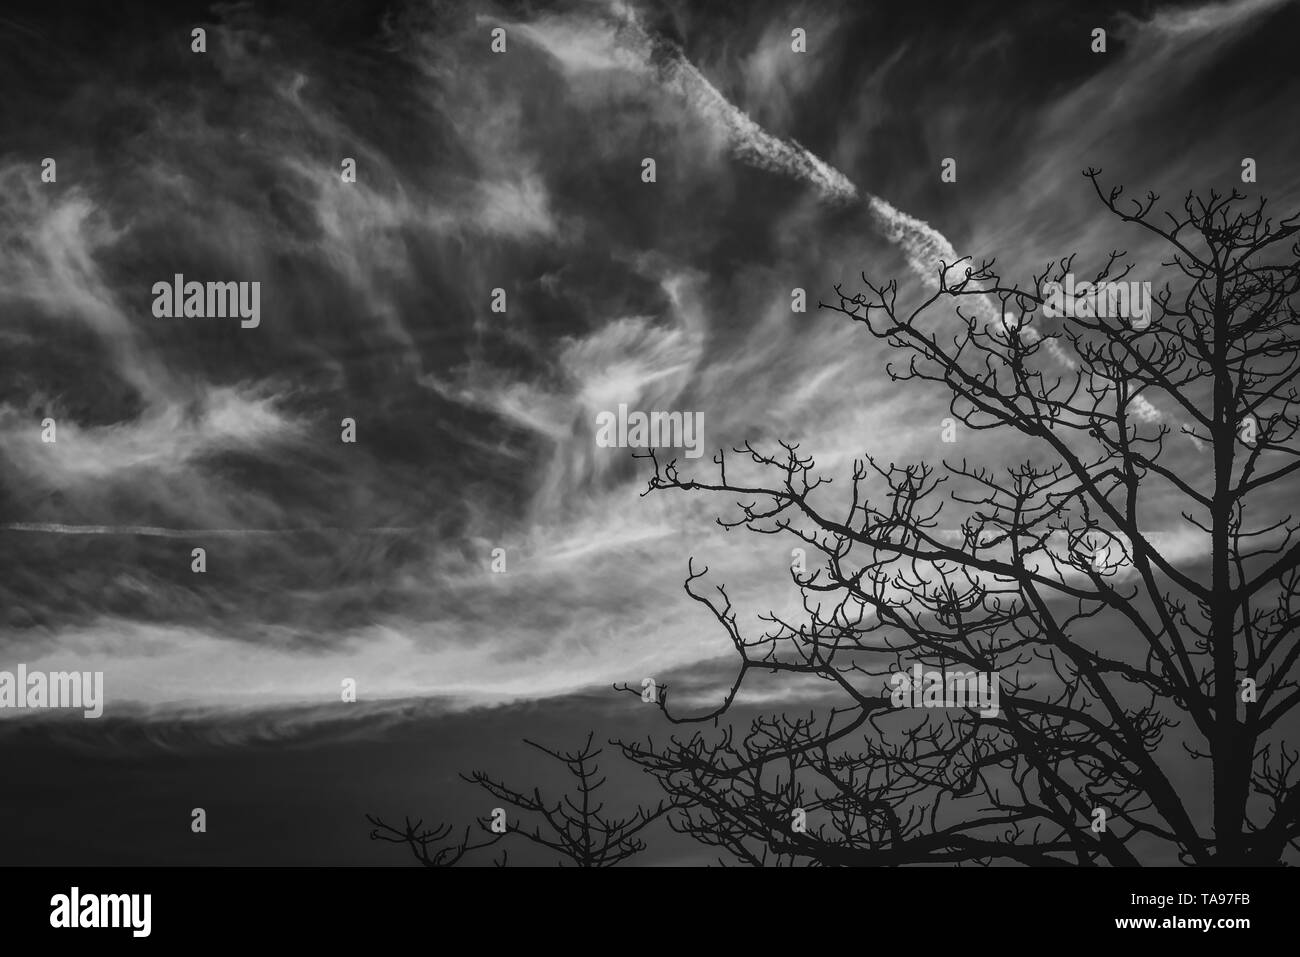 Silhouette leafless tree. Silhouette dead tree on dark dramatic sky and clouds background for scary or death. Halloween day background. Hopeless. - Stock Image